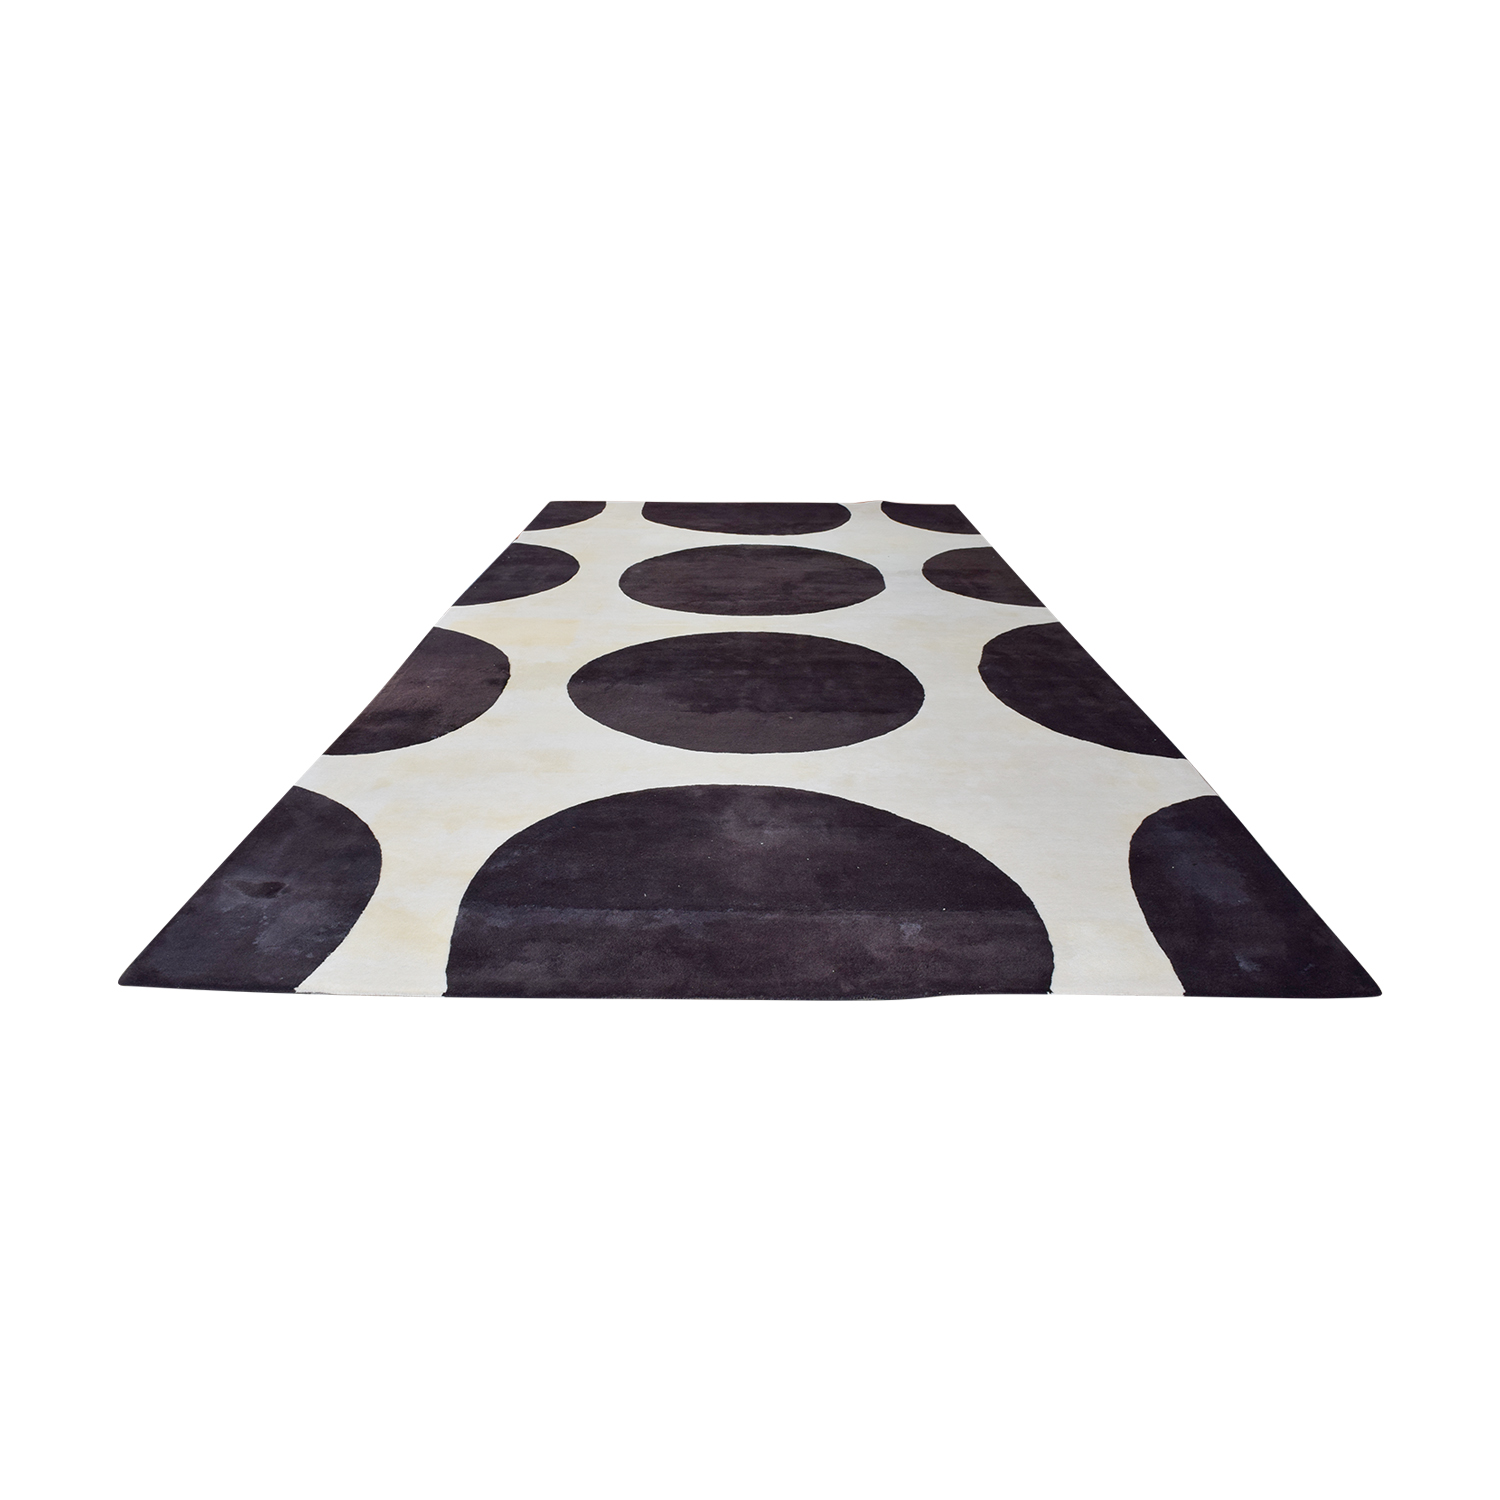 buy Gandia Blasco Brown and Cream Polkadot Rug Gandia Blasco Rugs